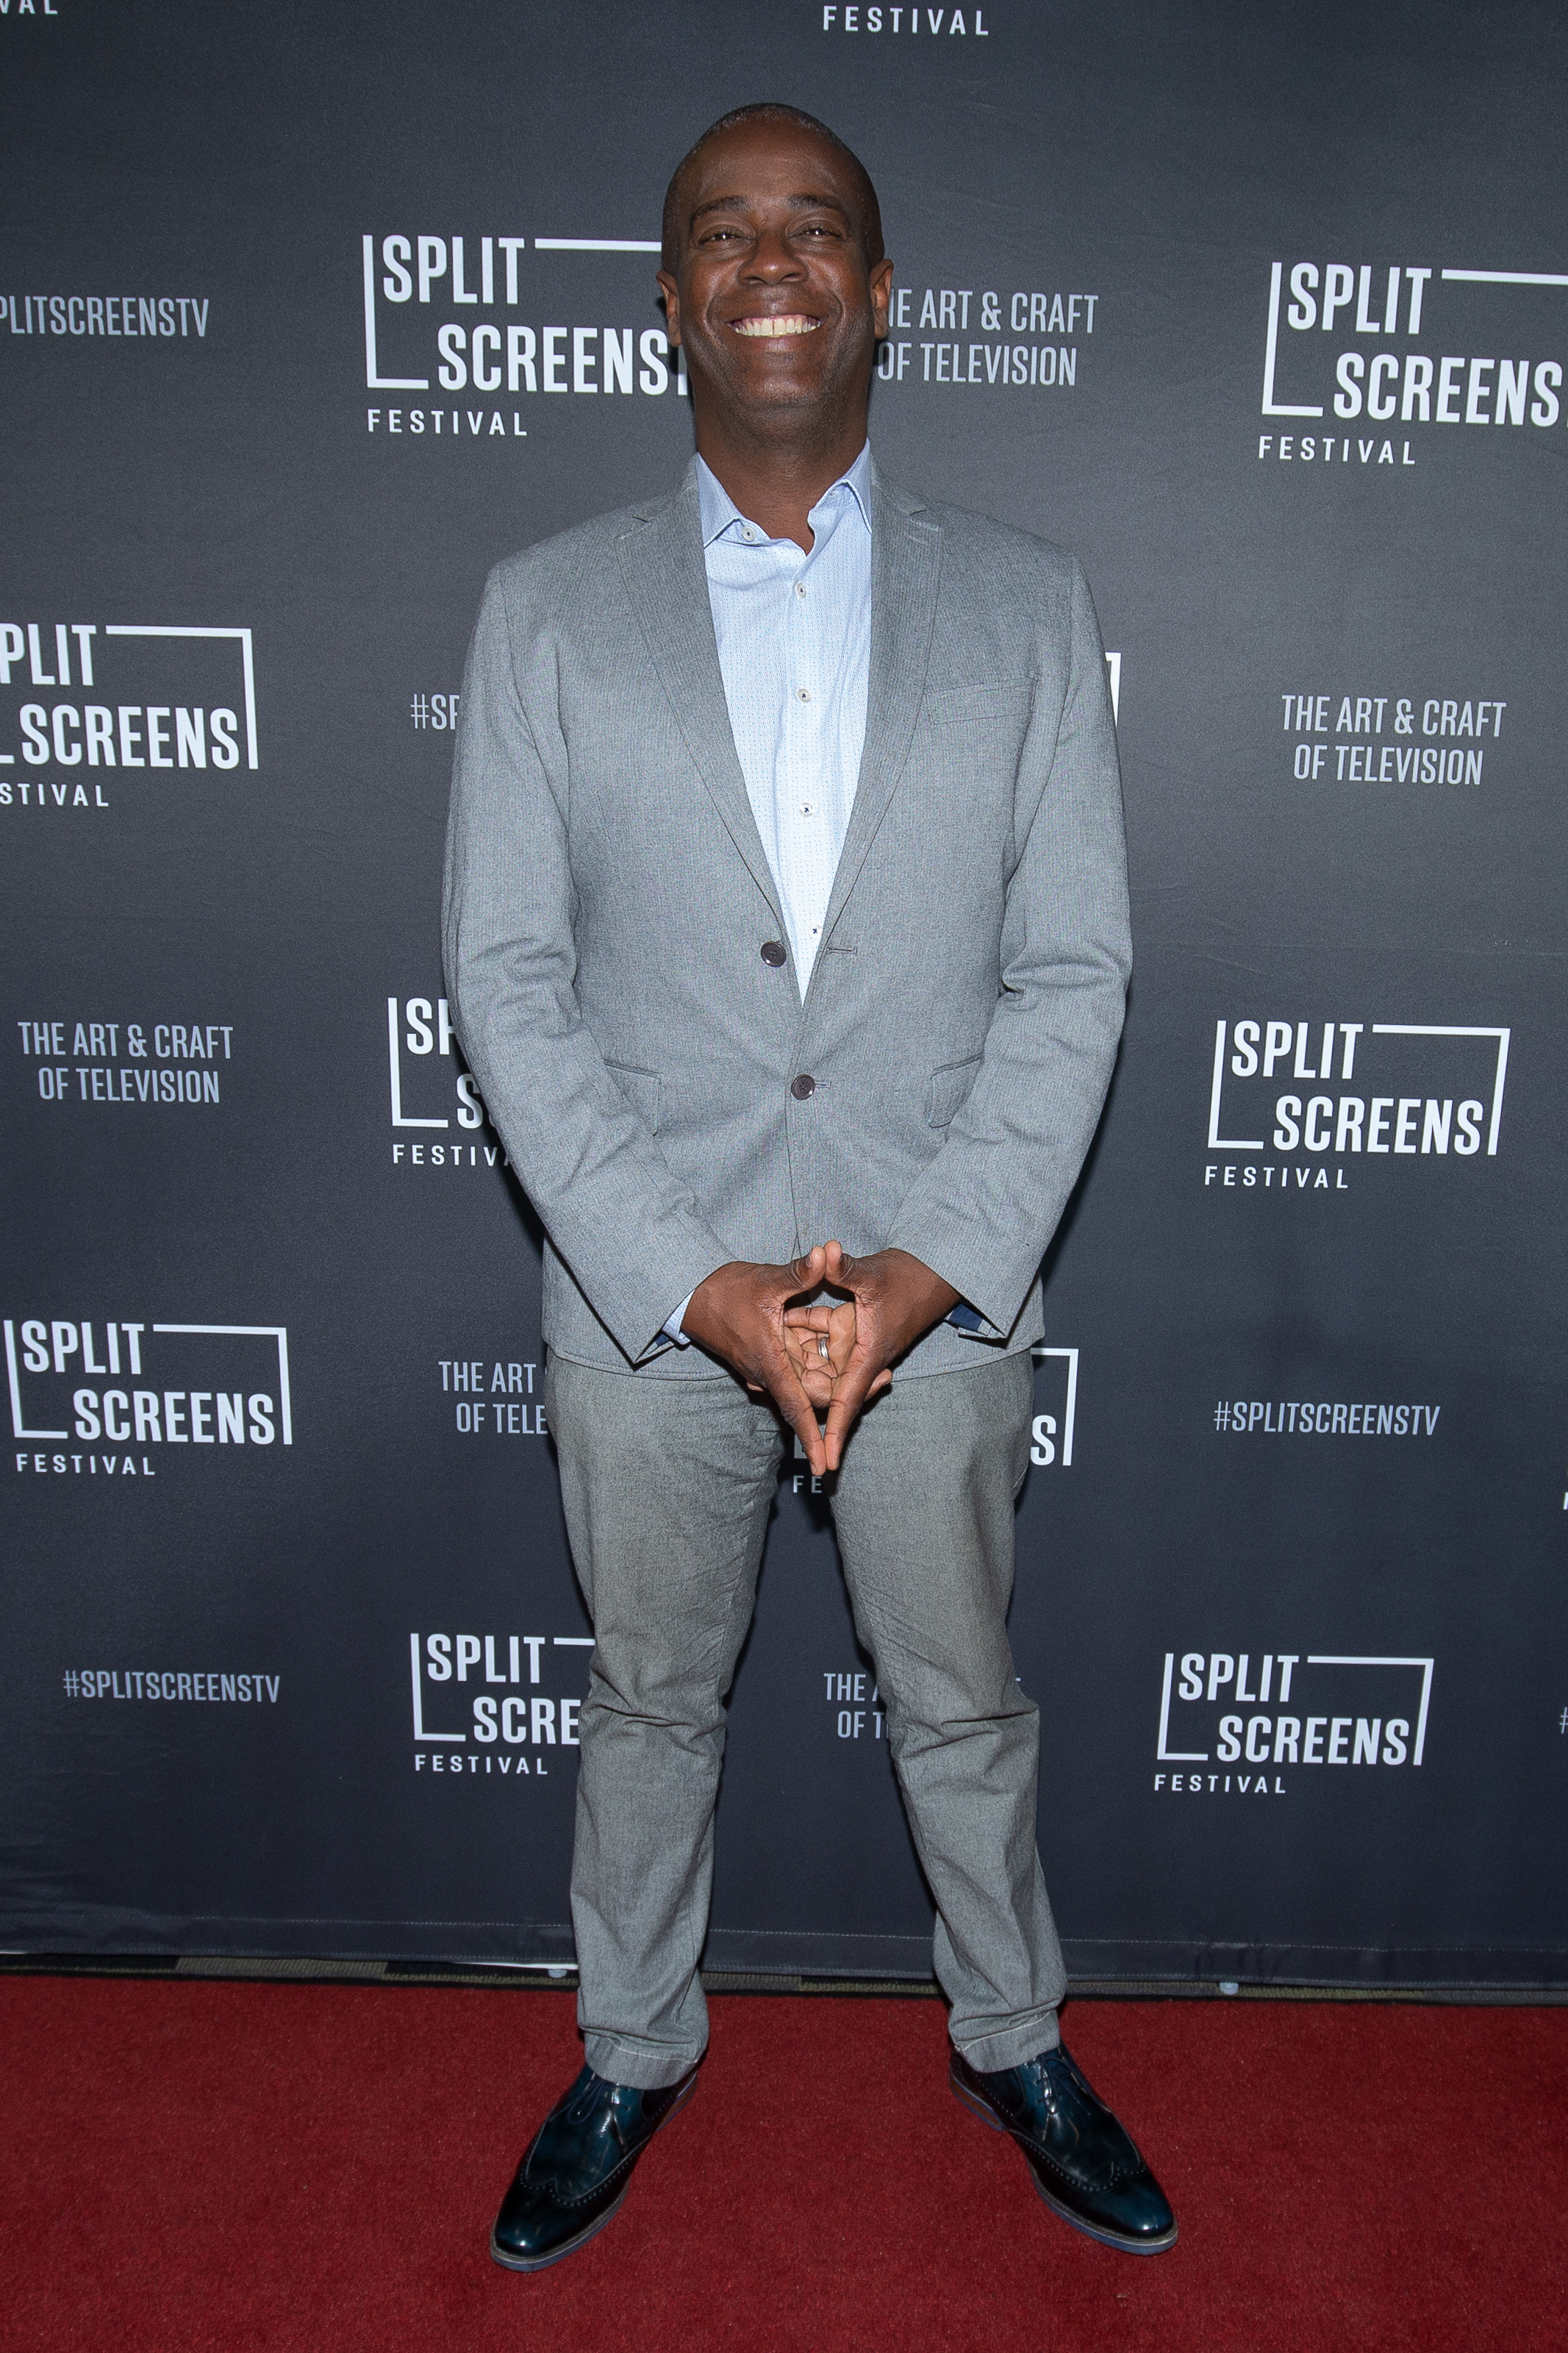 Anthony Sparks at IFC Center's third annual Split Screens Festival in New York. Photo Credit IFC Center/ Lou Aguilar